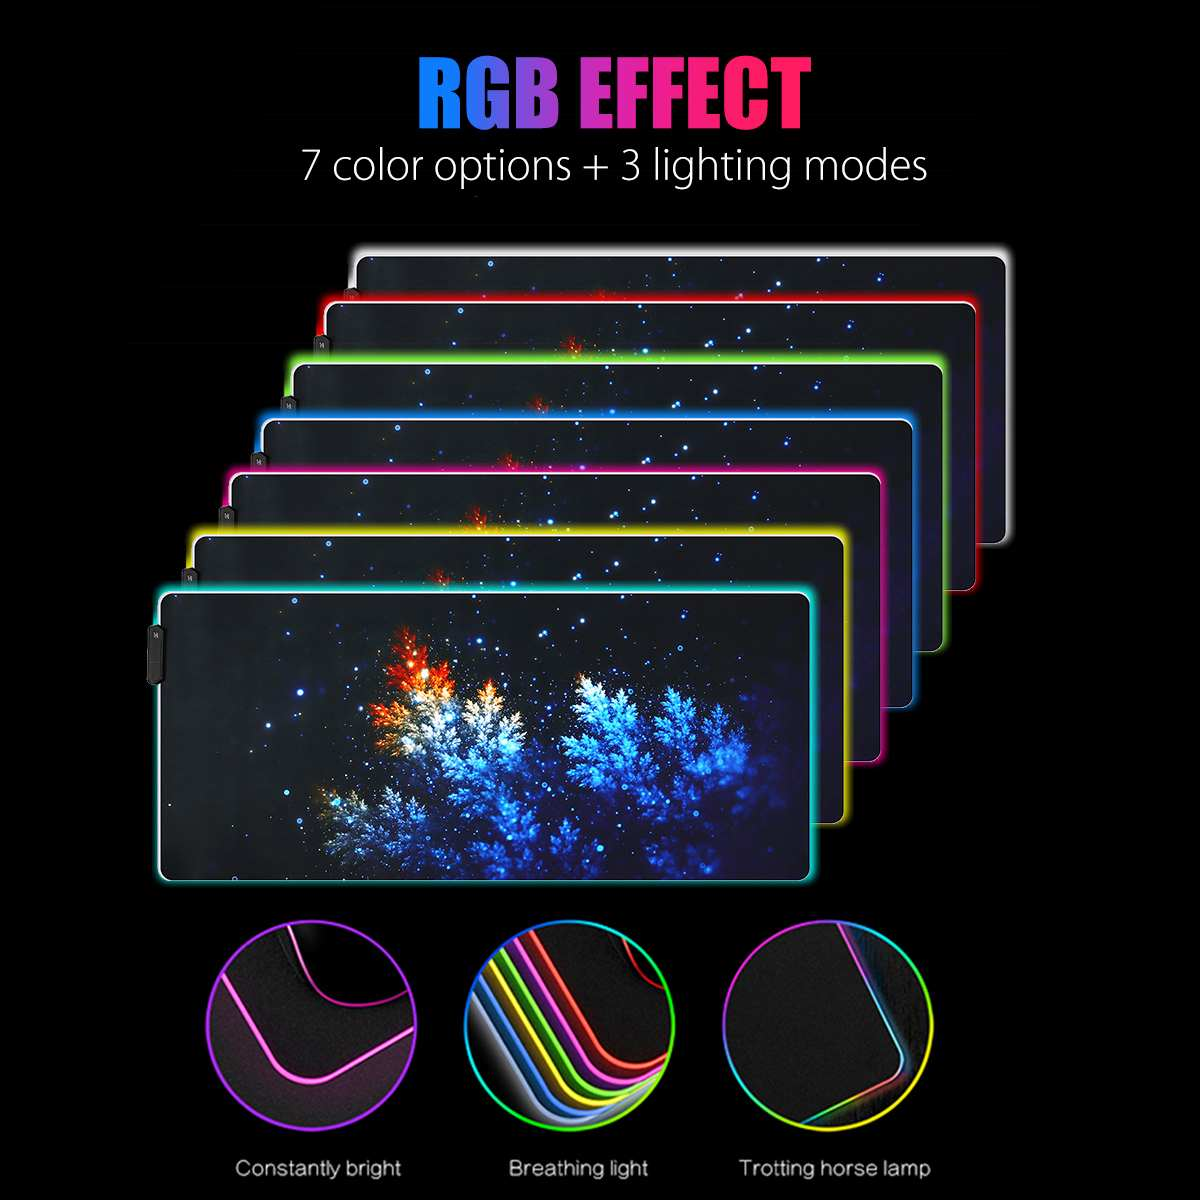 Gaming Mouse Pad LED RGB Large Gamer Mousepad USB LED Lighting Backlit Rainbow Computer Mat Rubber Keyboard Desk Pad for dota 2